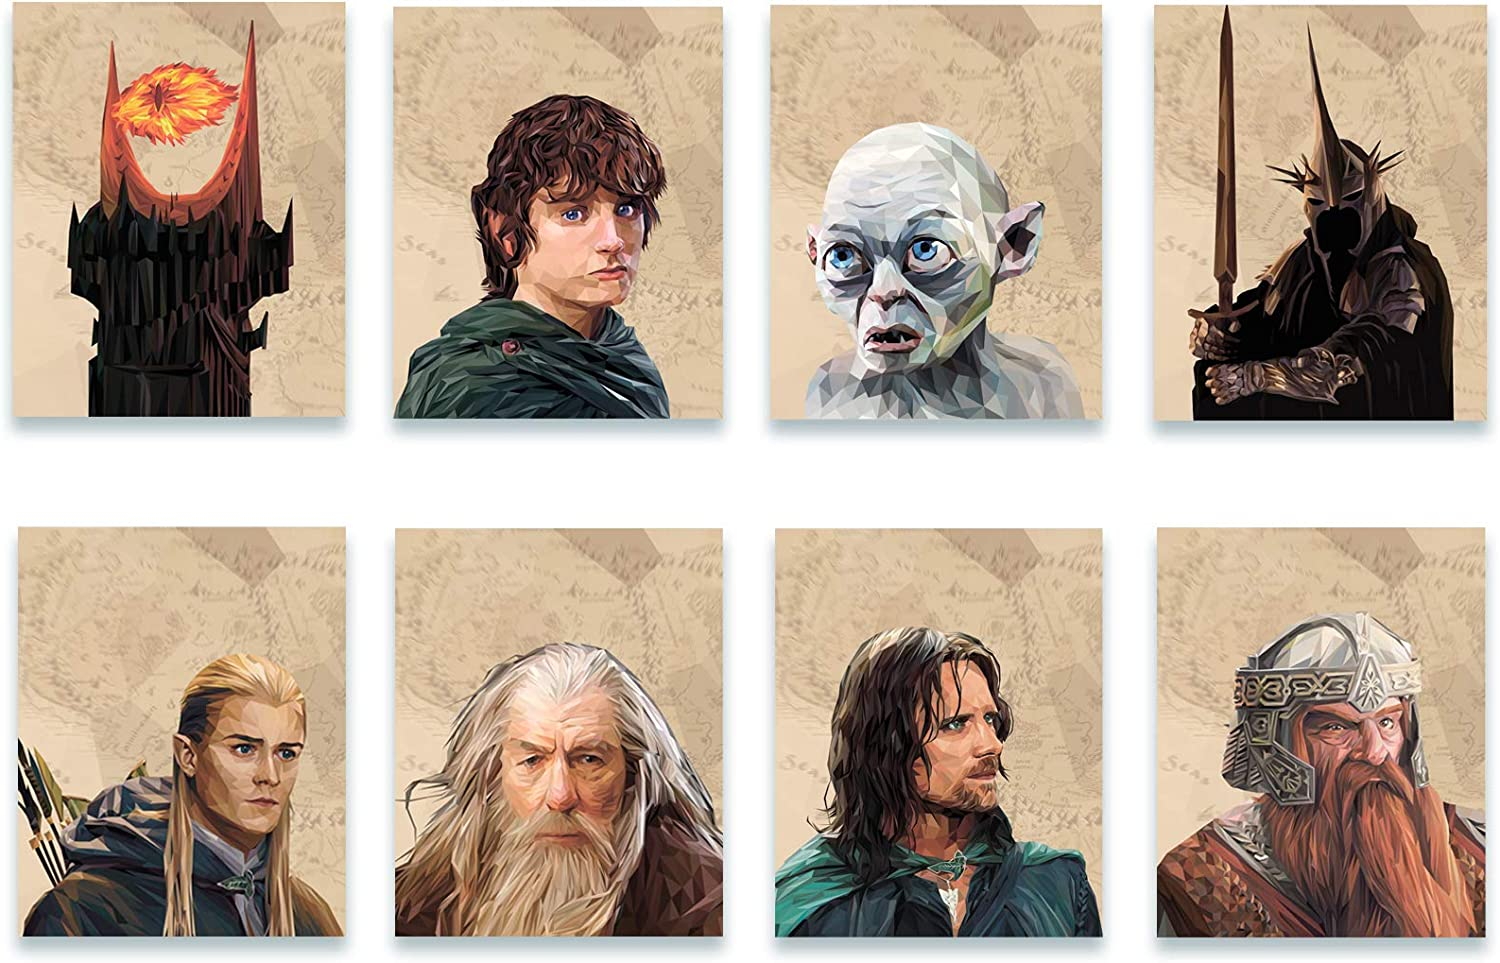 Lord of the Rings Posters - Set of 8 Wall Posters -Frodo Baggins - Aragorn - Legolas - Gollum - Gandalf - Sauron- Nazgul and Gimli - Polygonal Style - Bedroom Decor - Party Supplies (Polygonal, 8x10)